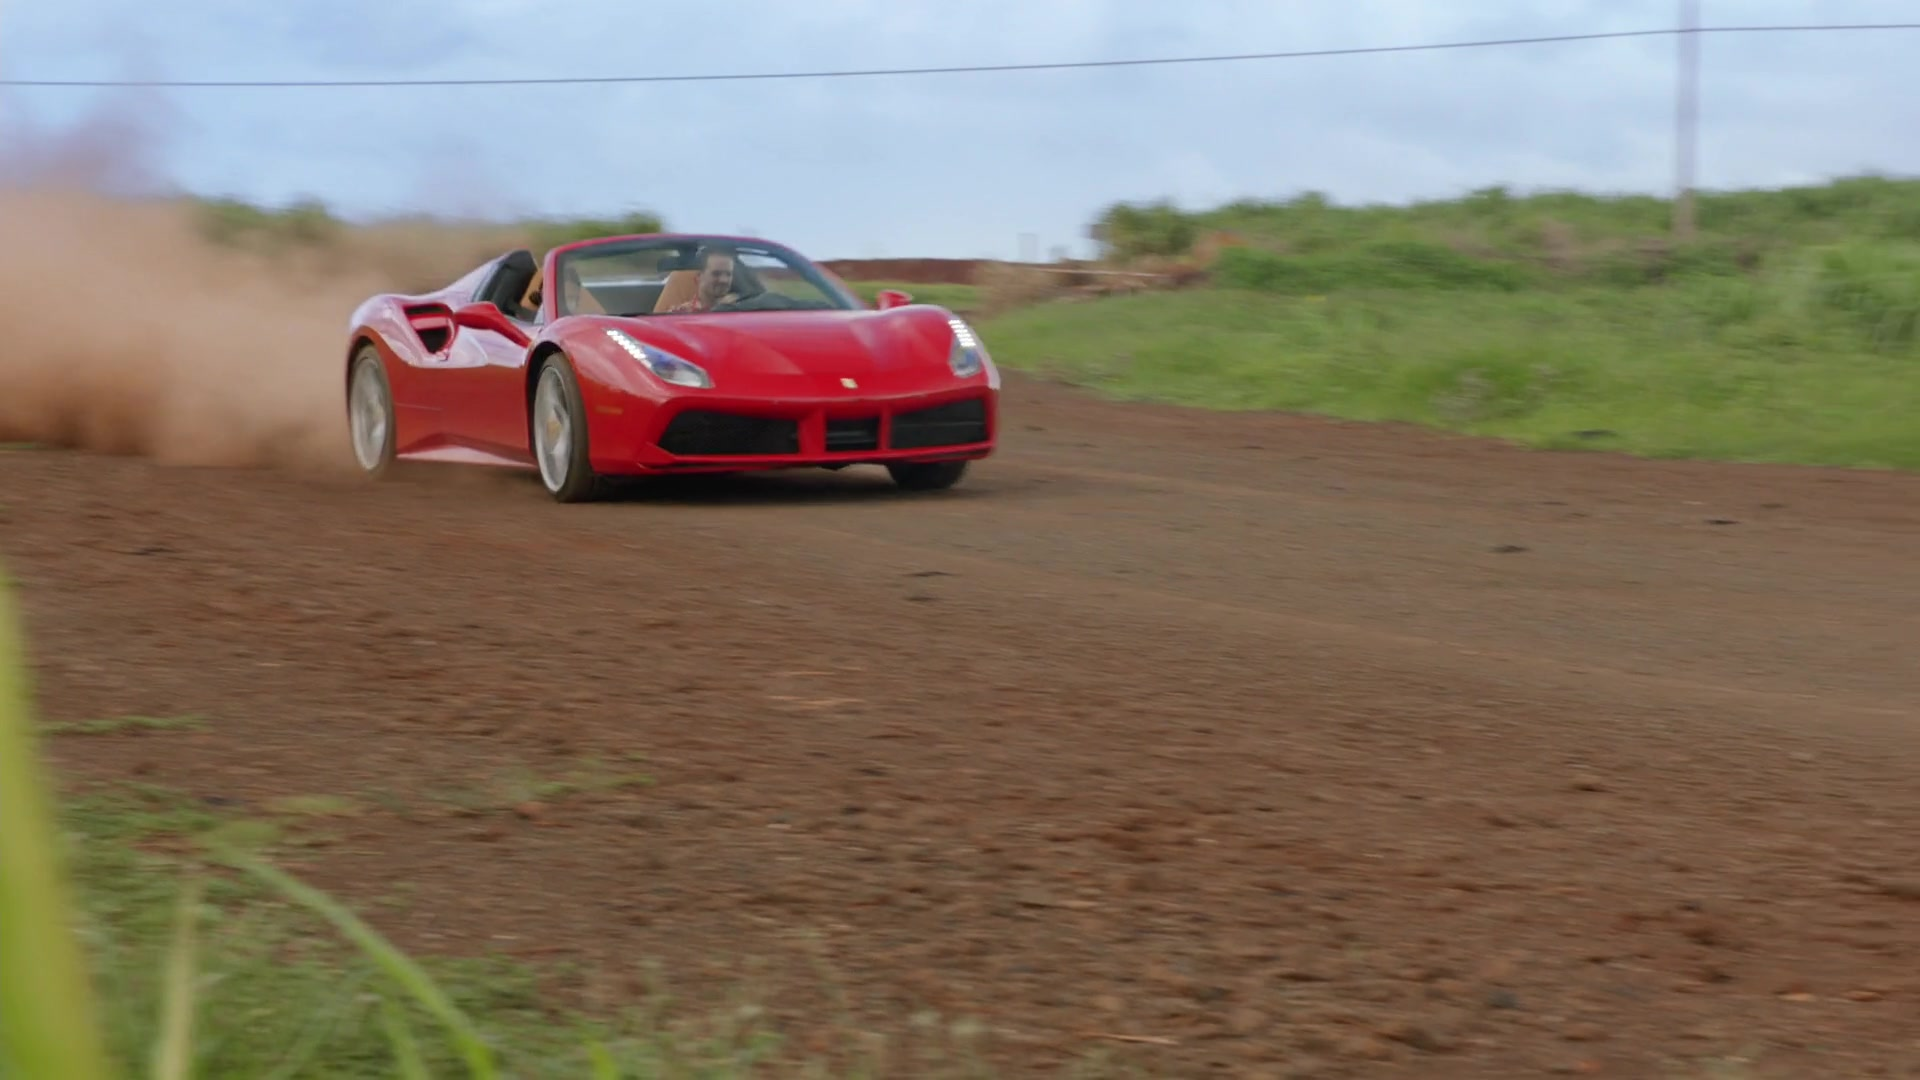 2016 Dodge Magnum >> Ferrari 488 Spider Red Sports Car Used by Jay Hernandez in Magnum P.I. Season 1 Episode 8: The ...